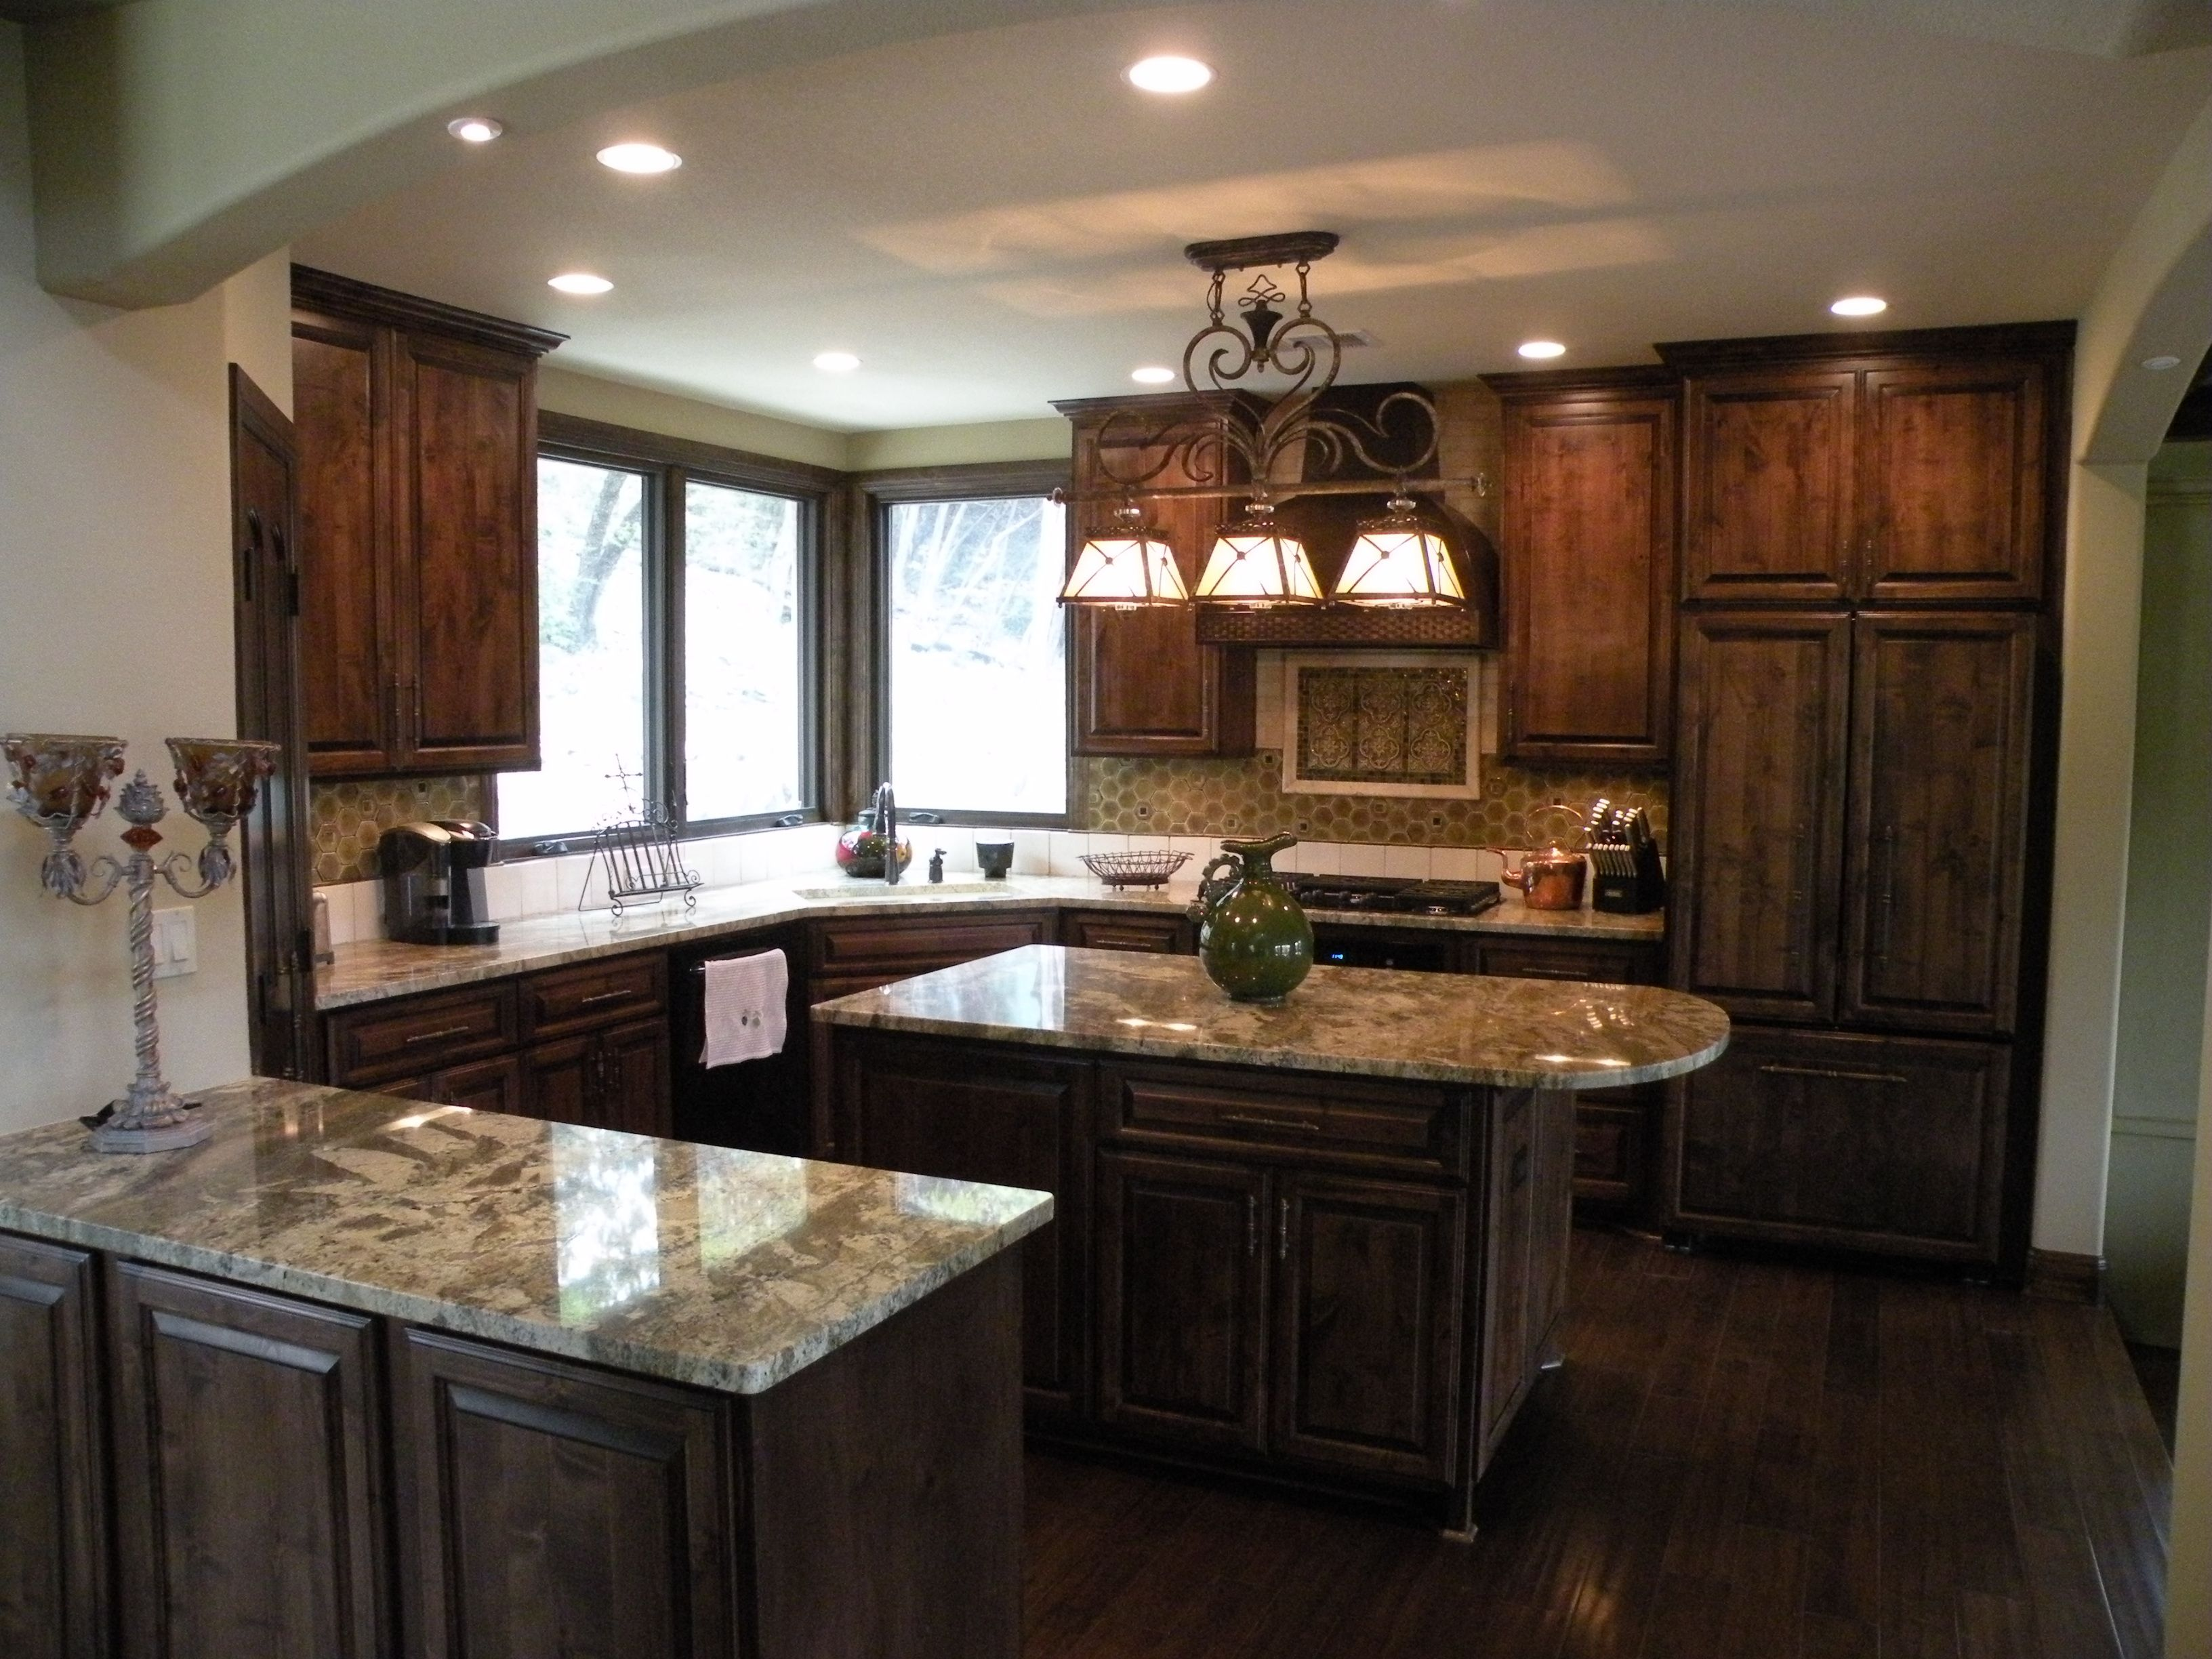 Dark Wood Cabinets In Kitchen Very Comfortable Kitchen Layout Cabinets Are Knotty Alder